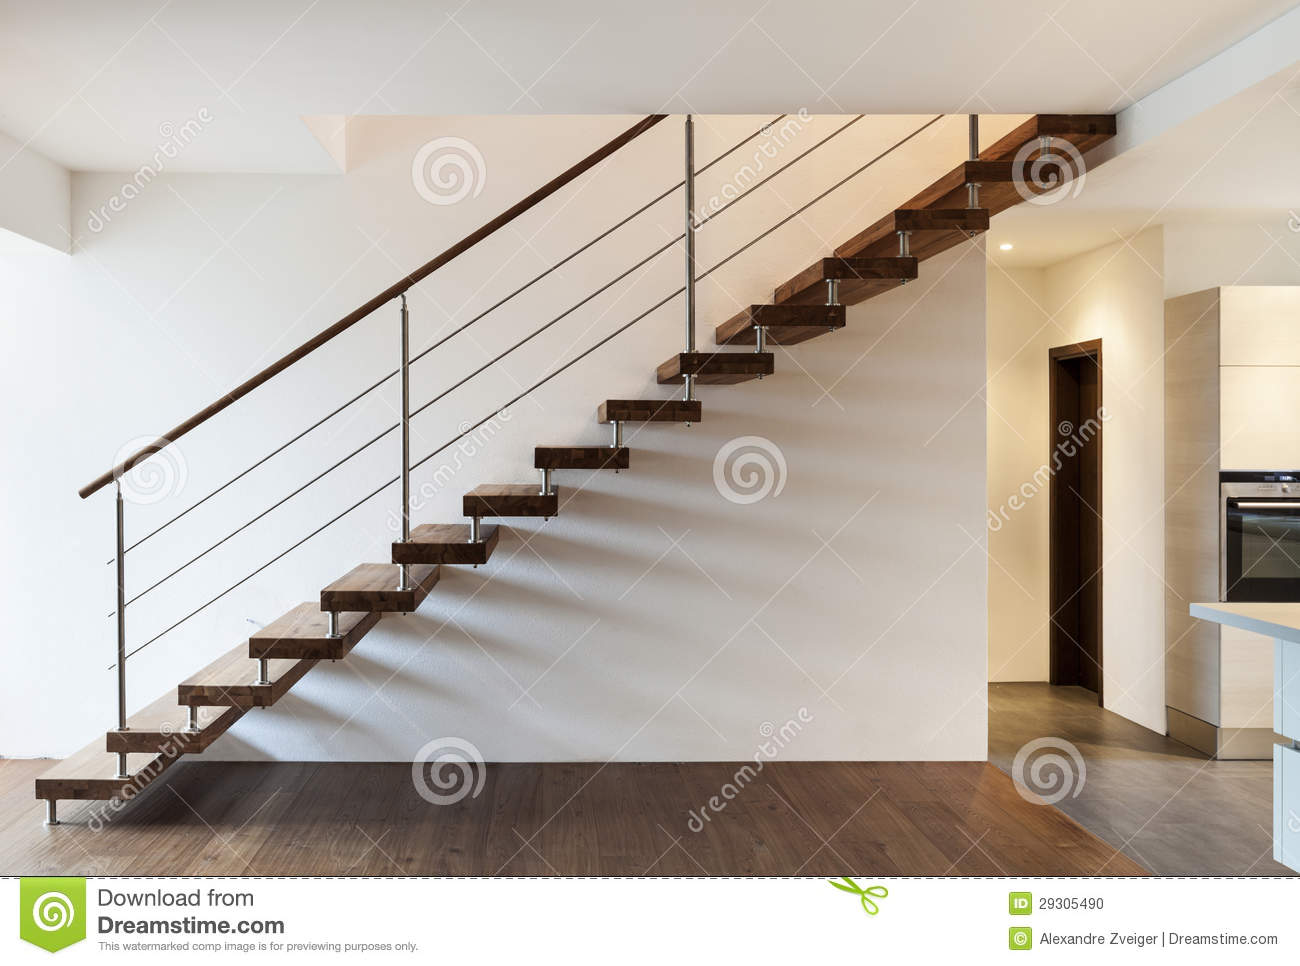 Escalier int rieur photo stock image du vide acier 29305490 for Photo d interieur